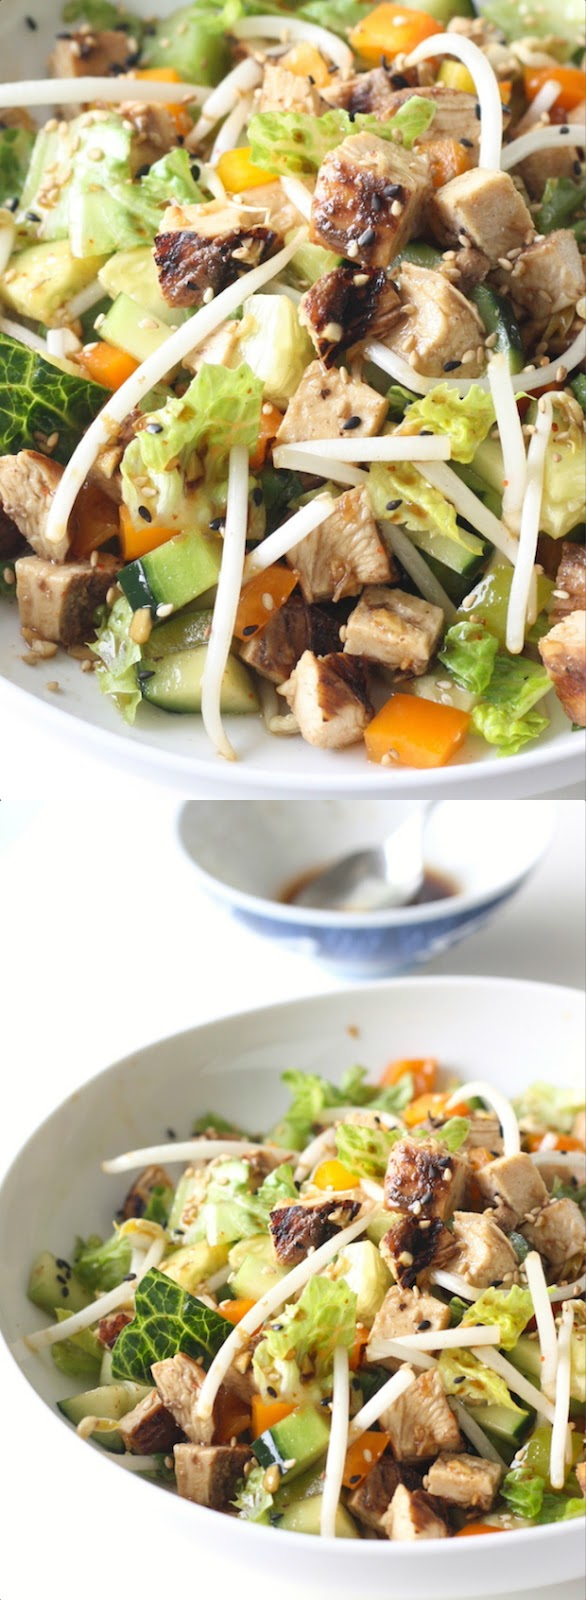 Chinese Honey BBQ Chicken Salad with Soy-Garlic Dressing by SeasonWithSpice.com